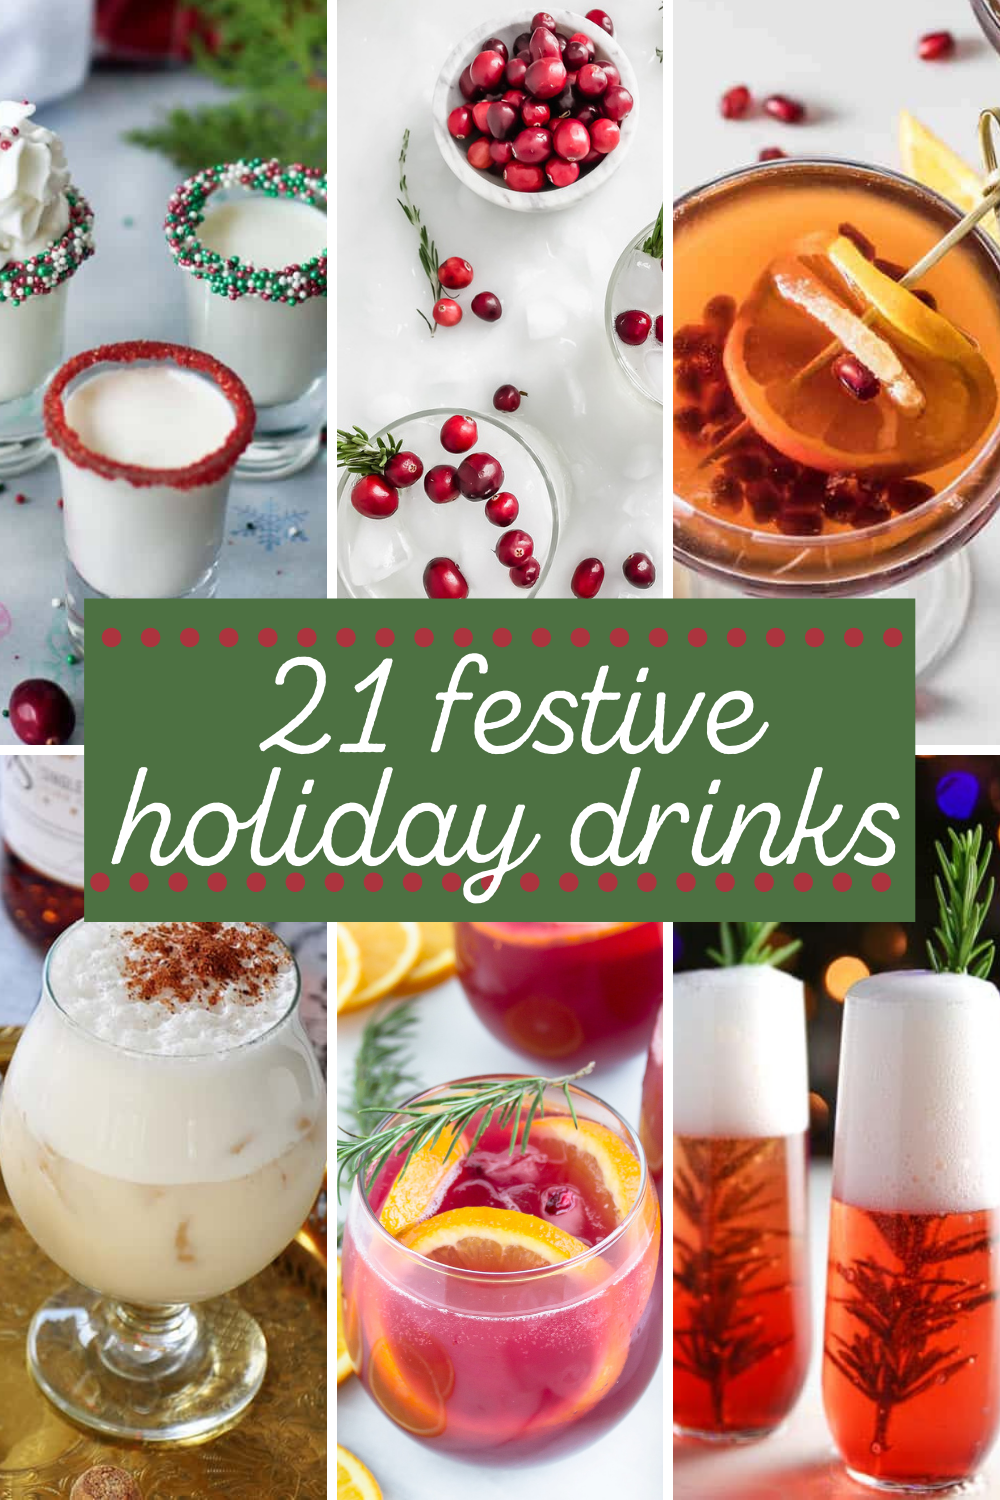 pinnable image of 22 festive holiday drinks